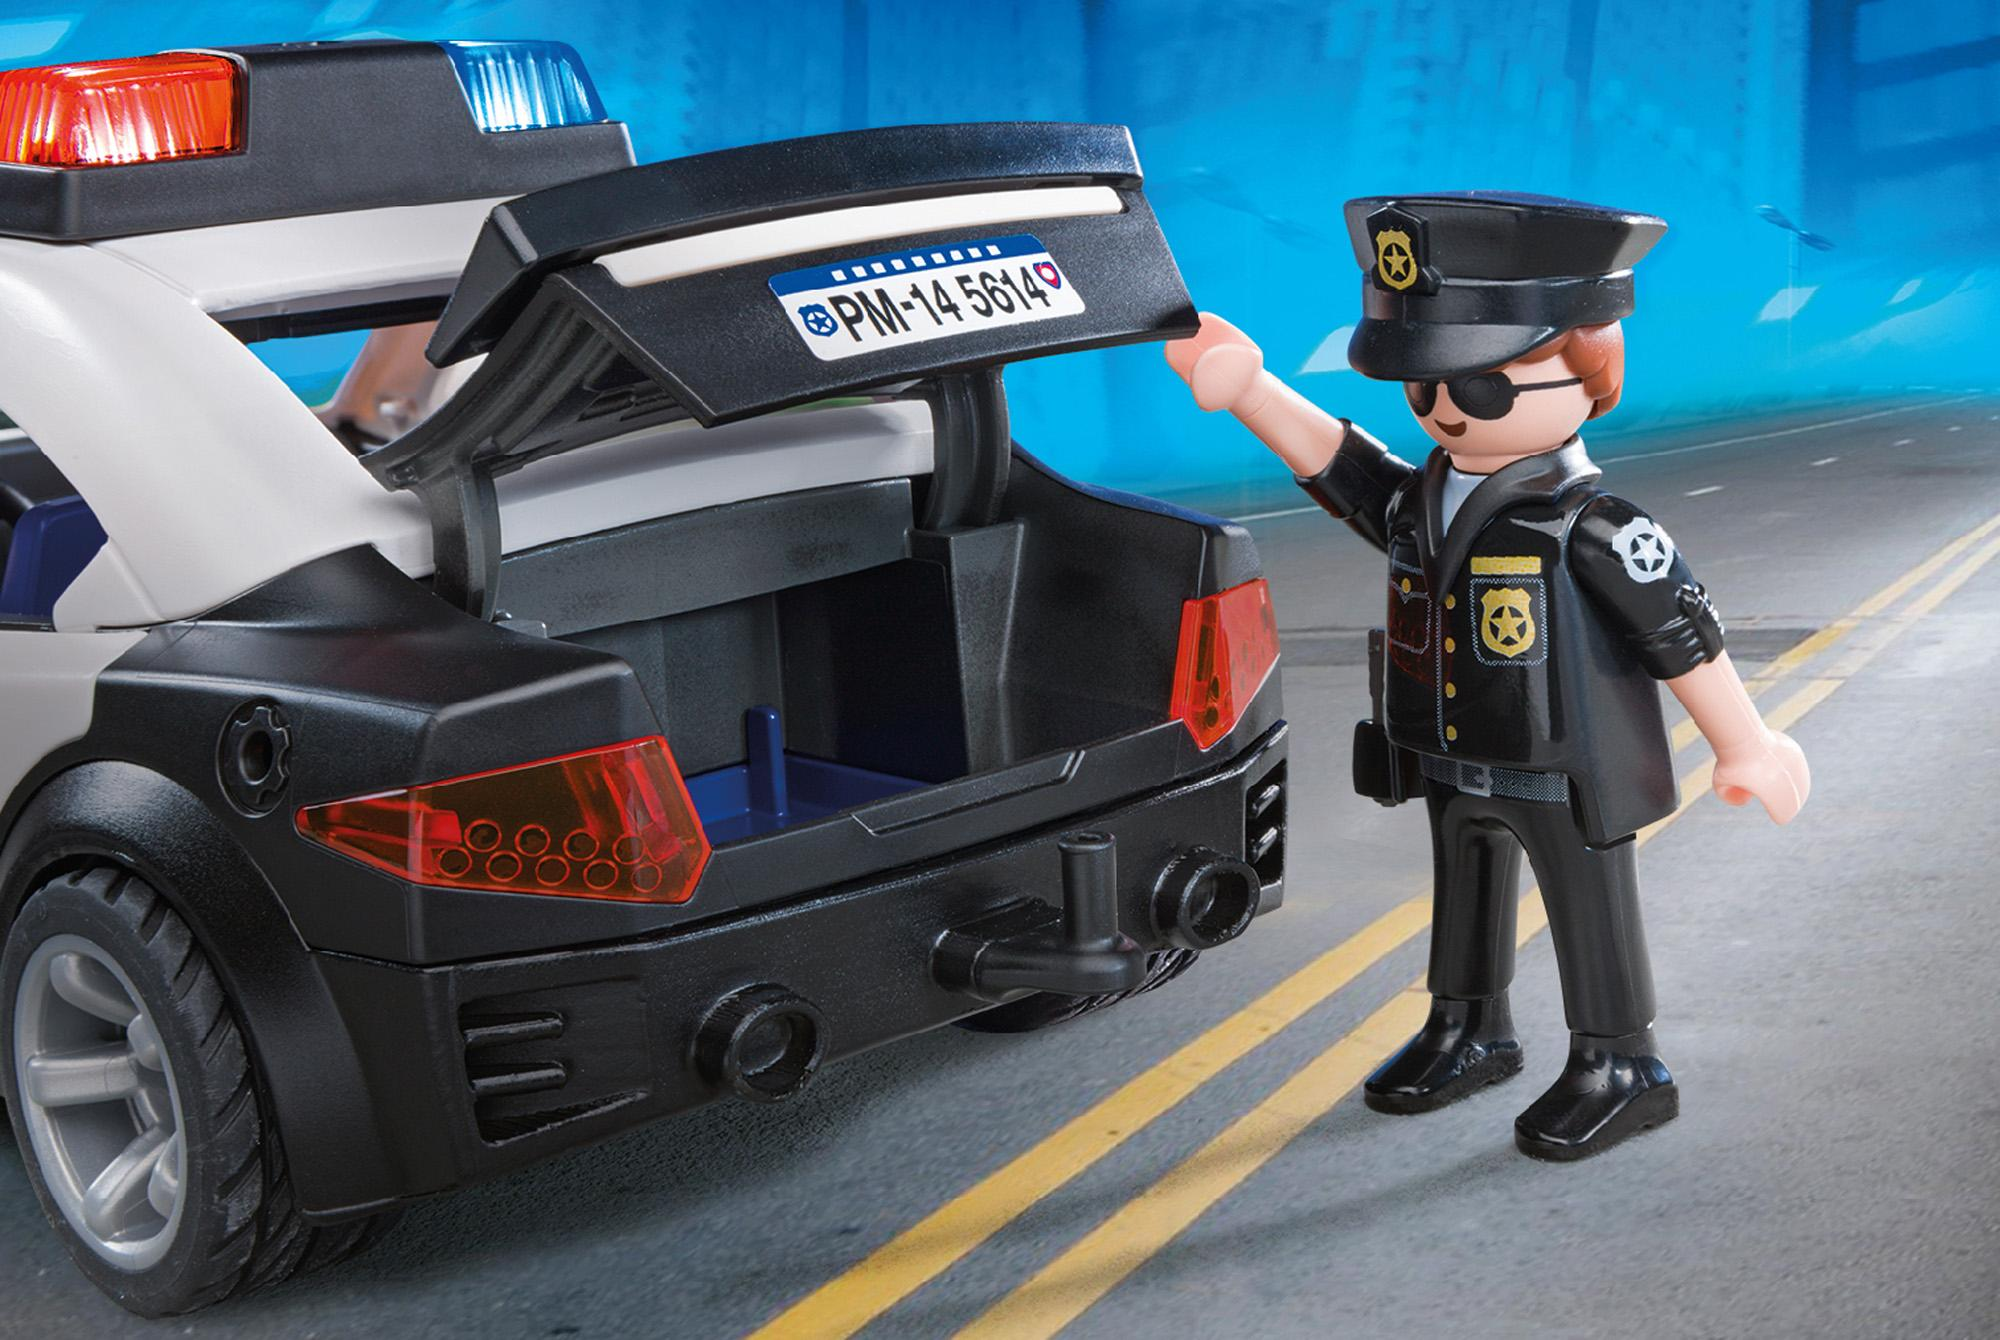 Amazon.com: PLAYMOBIL Police Cruiser Playset: Toys & Games